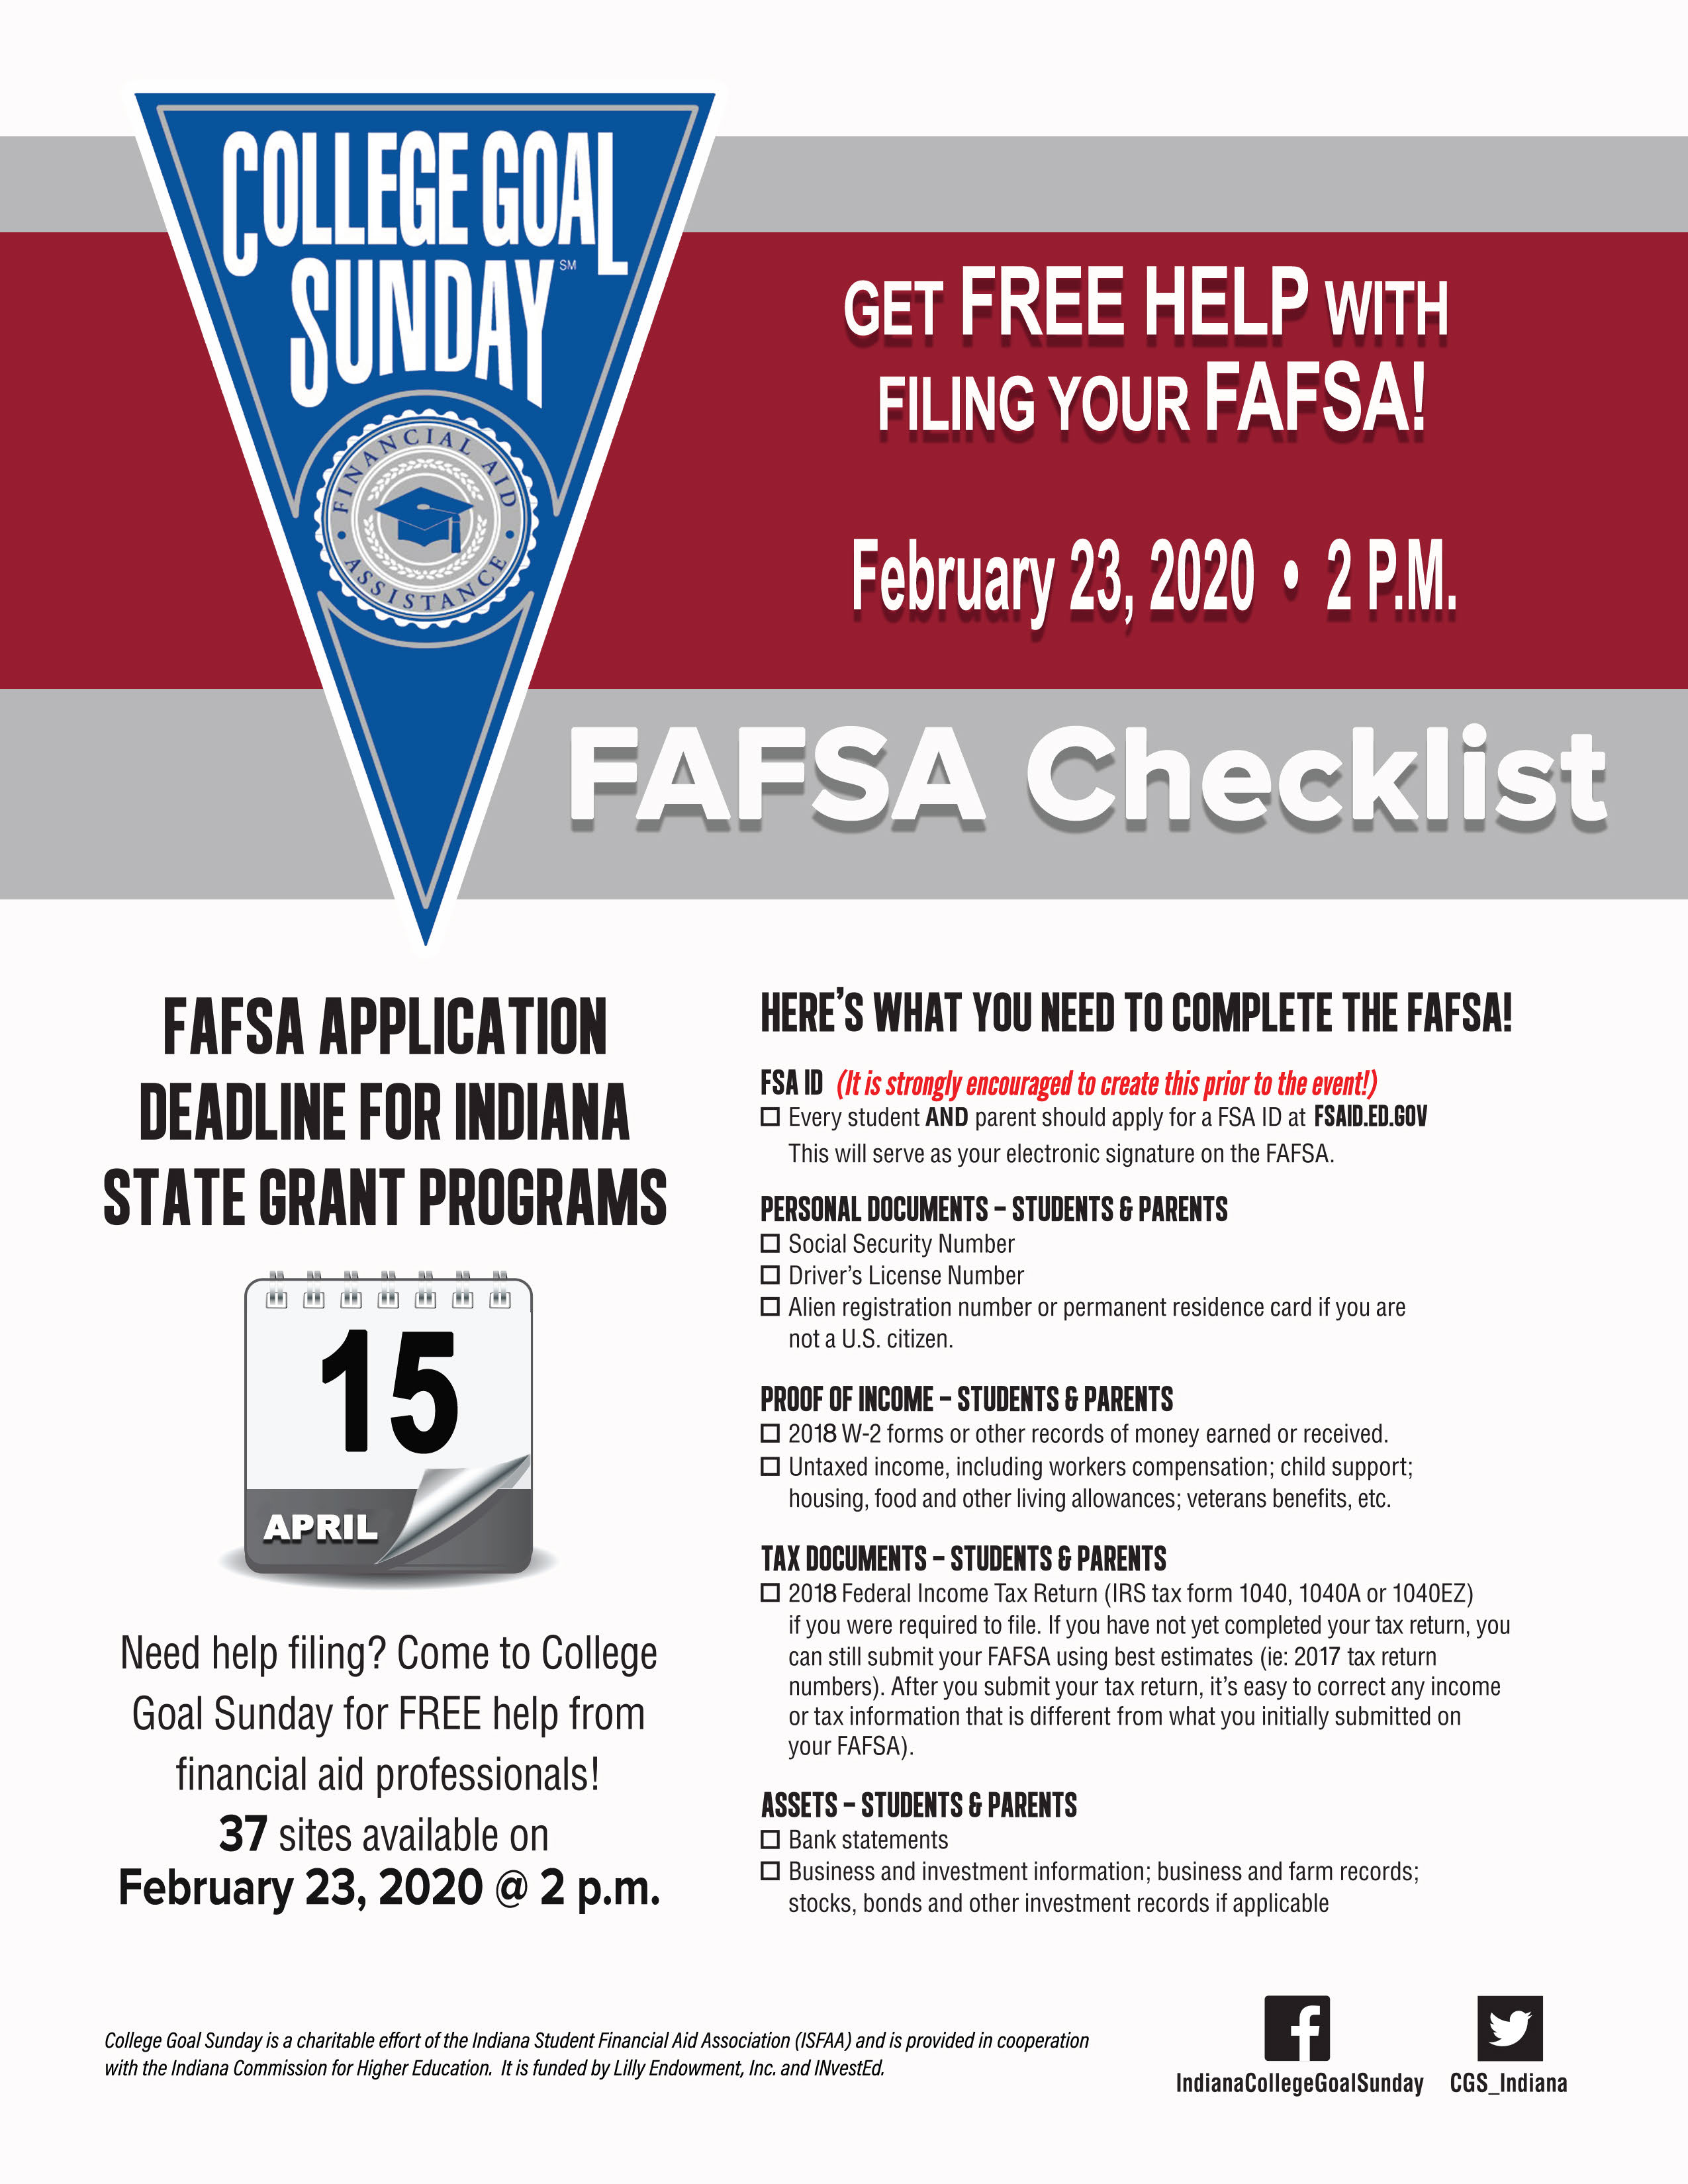 Free Fafsa Help Available During College Goal Sunday Feb